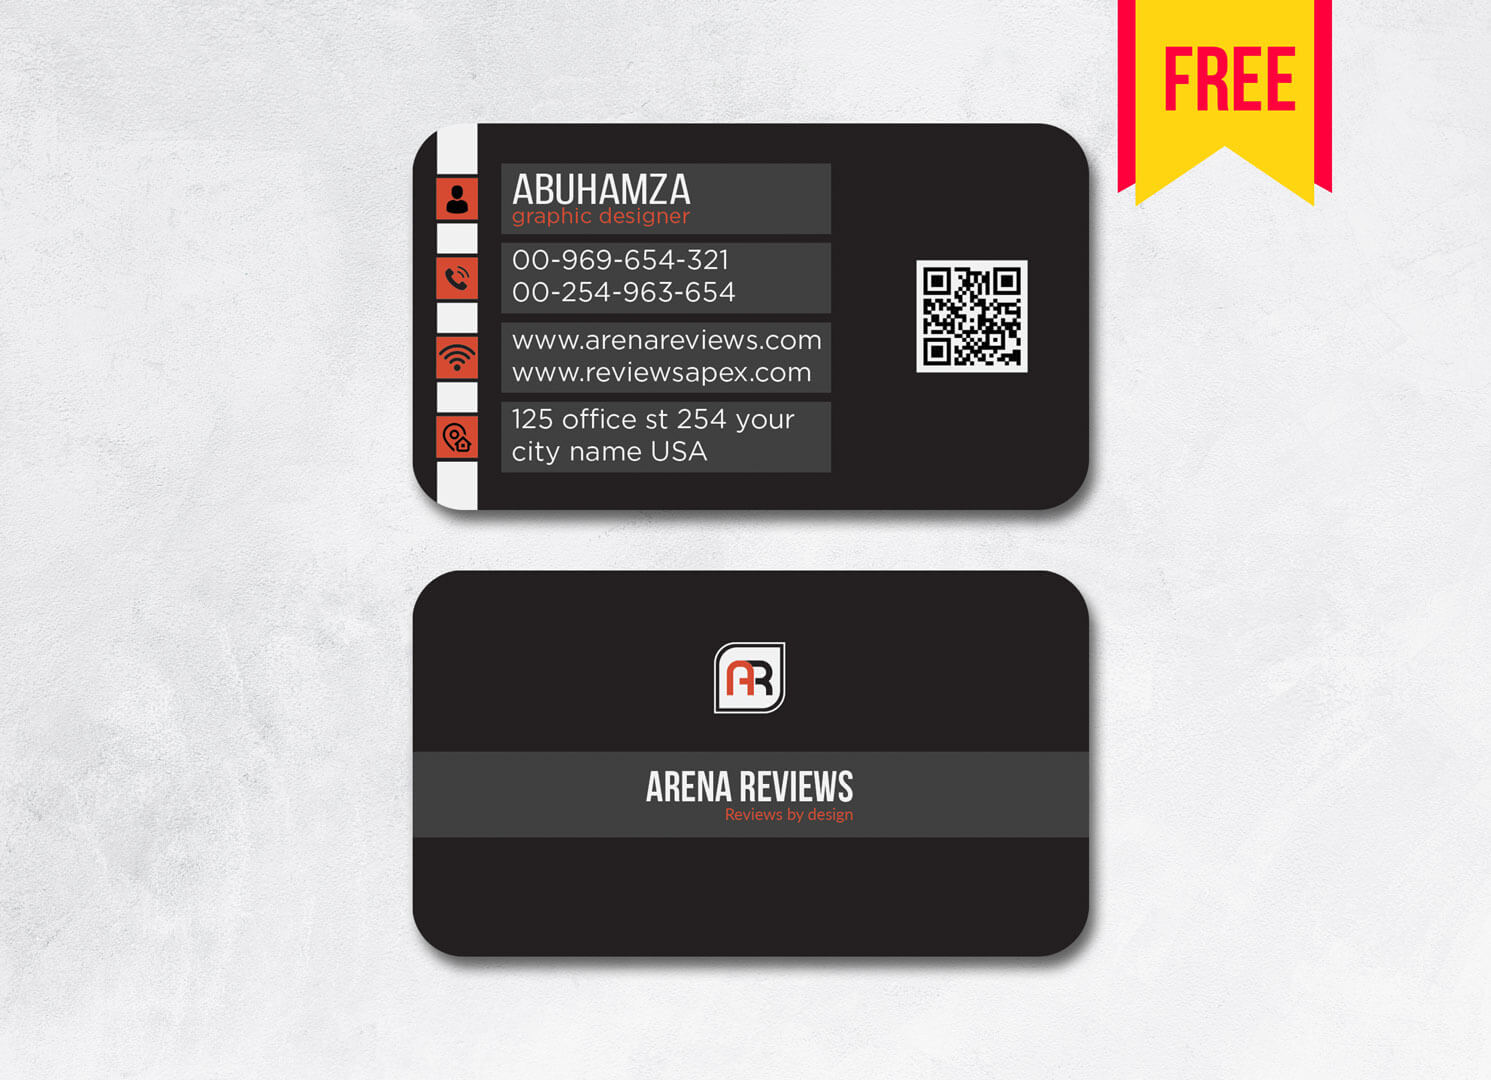 Dark Business Card Template Psd File | Free Download In Business Card Template Photoshop Cs6